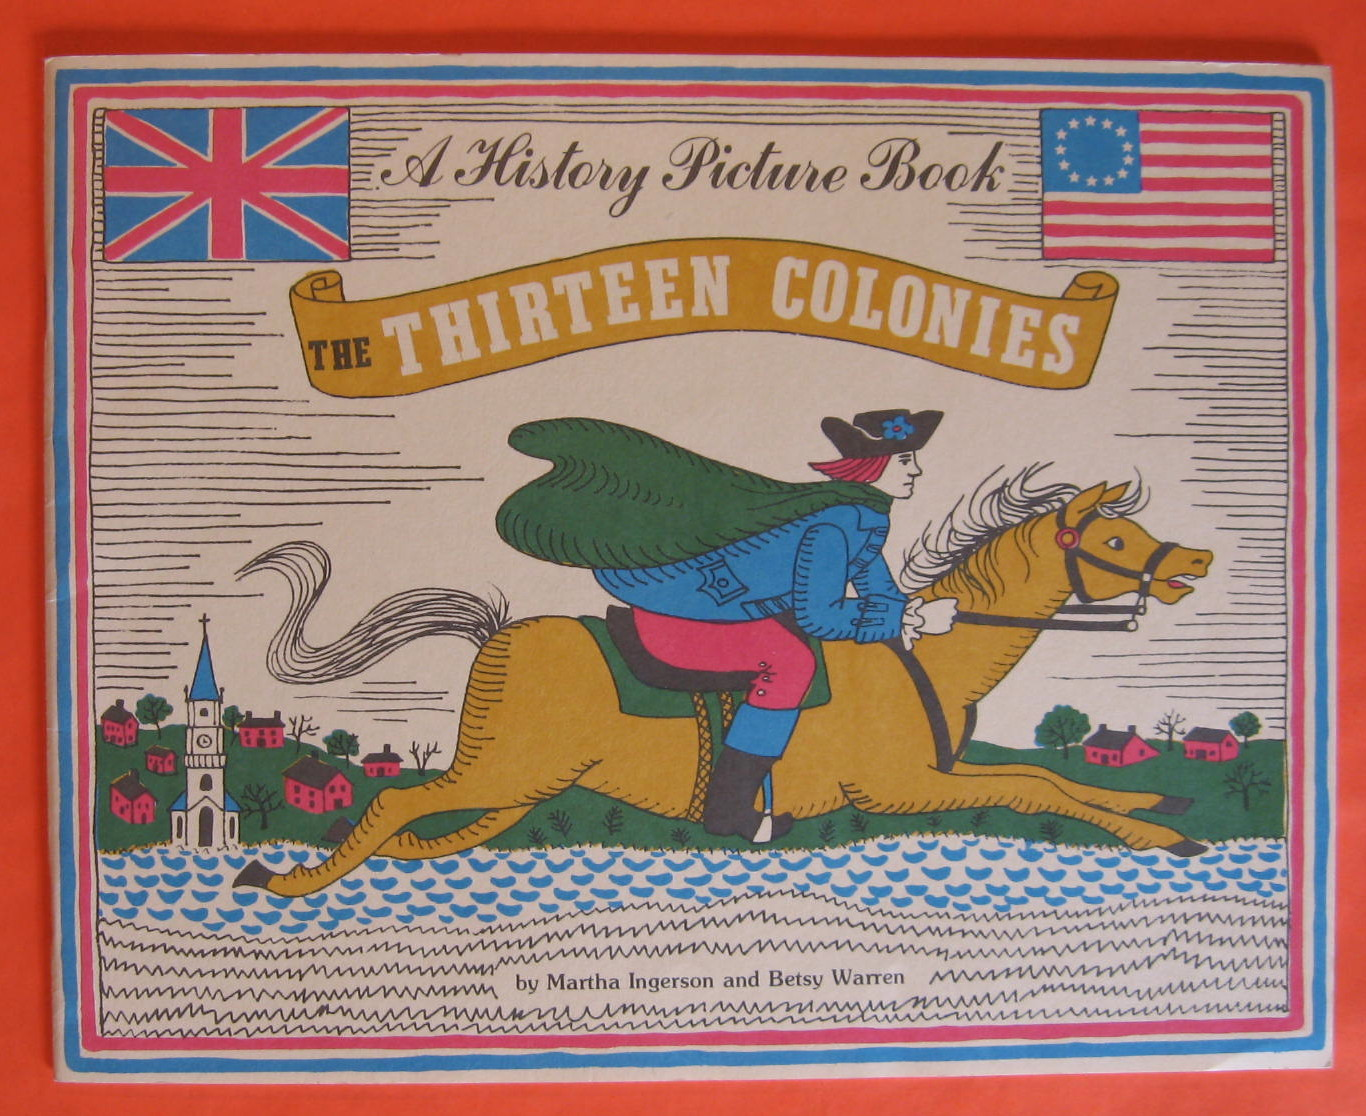 Image for The Thirteen Colonies: a History Picture Book